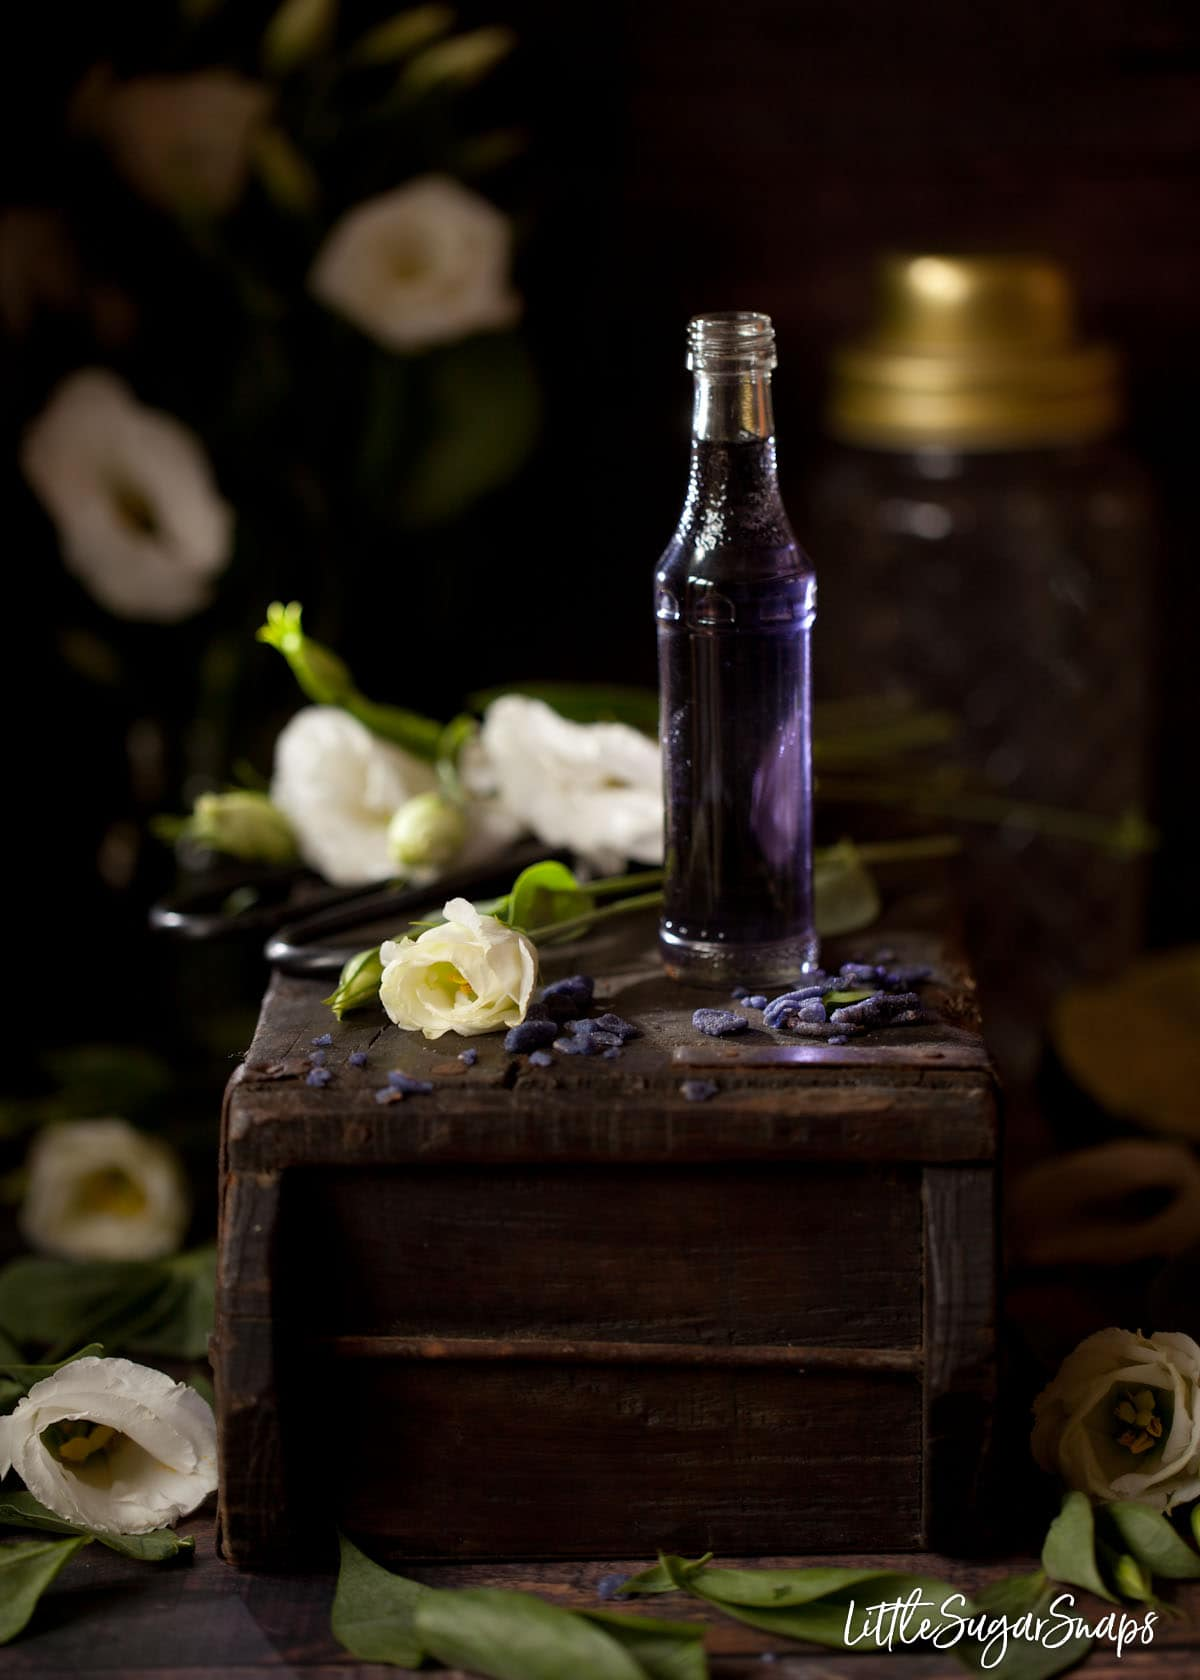 A small bottle of violet flavoured syrup on a wooden block with candied violet pieces and white flowers on the box too. Rustic setting